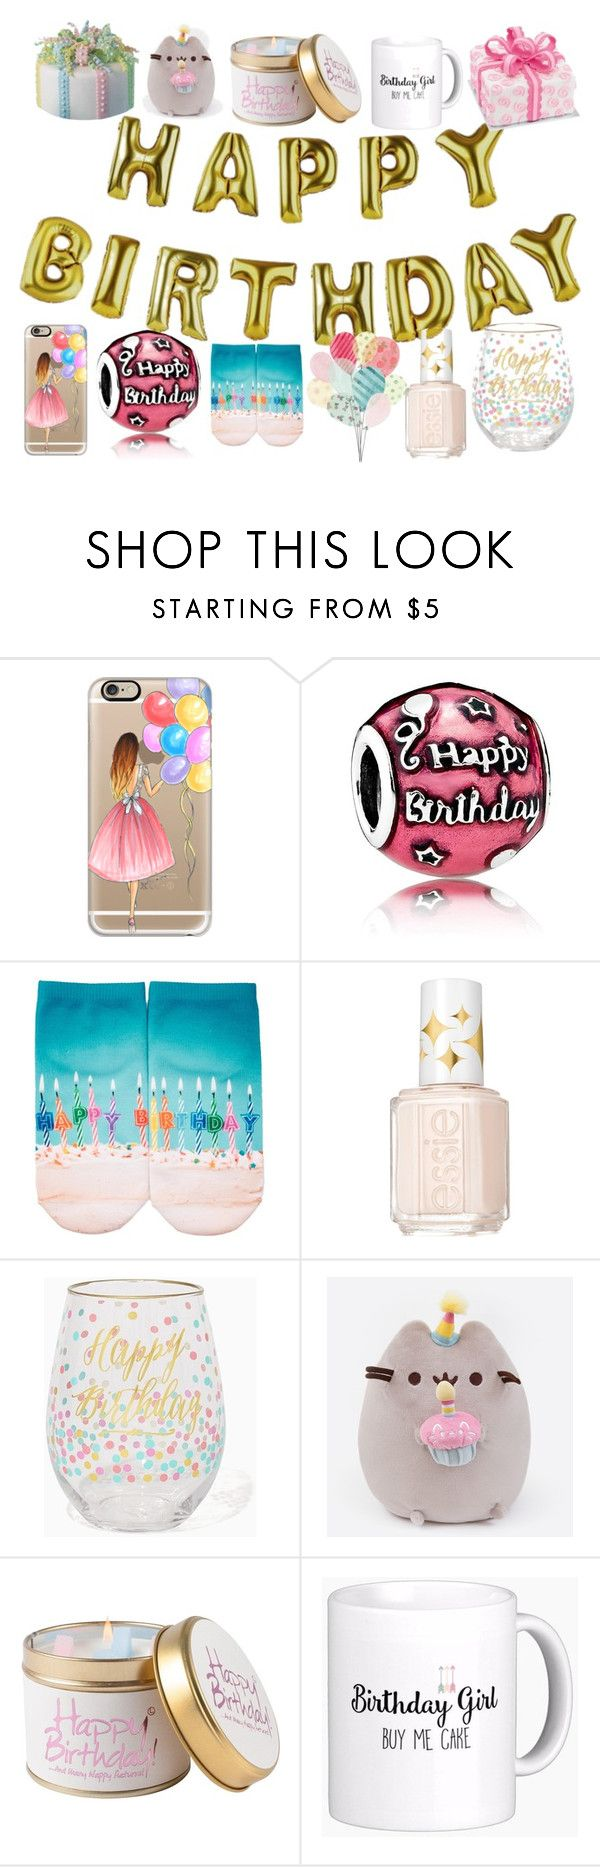 """""""Happy birthday, birthday girl"""" by colourlover24 ❤ liked on Polyvore featuring Talking Tables, Casetify, Pandora, Free Press, Essie, Pusheen and Lily-Flame"""